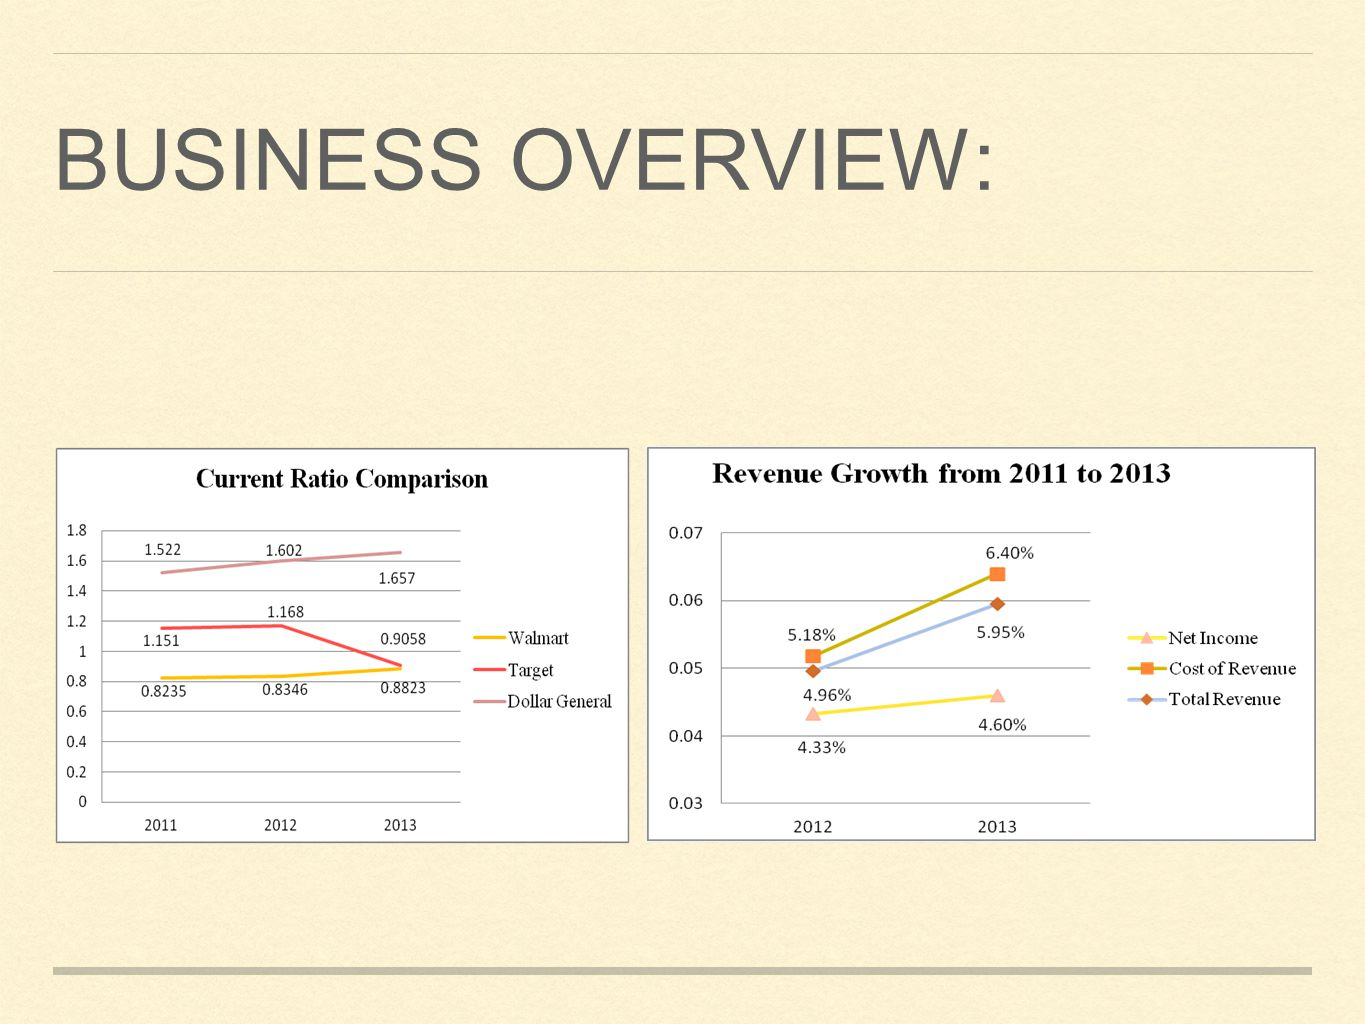 BUSINESS OVERVIEW: